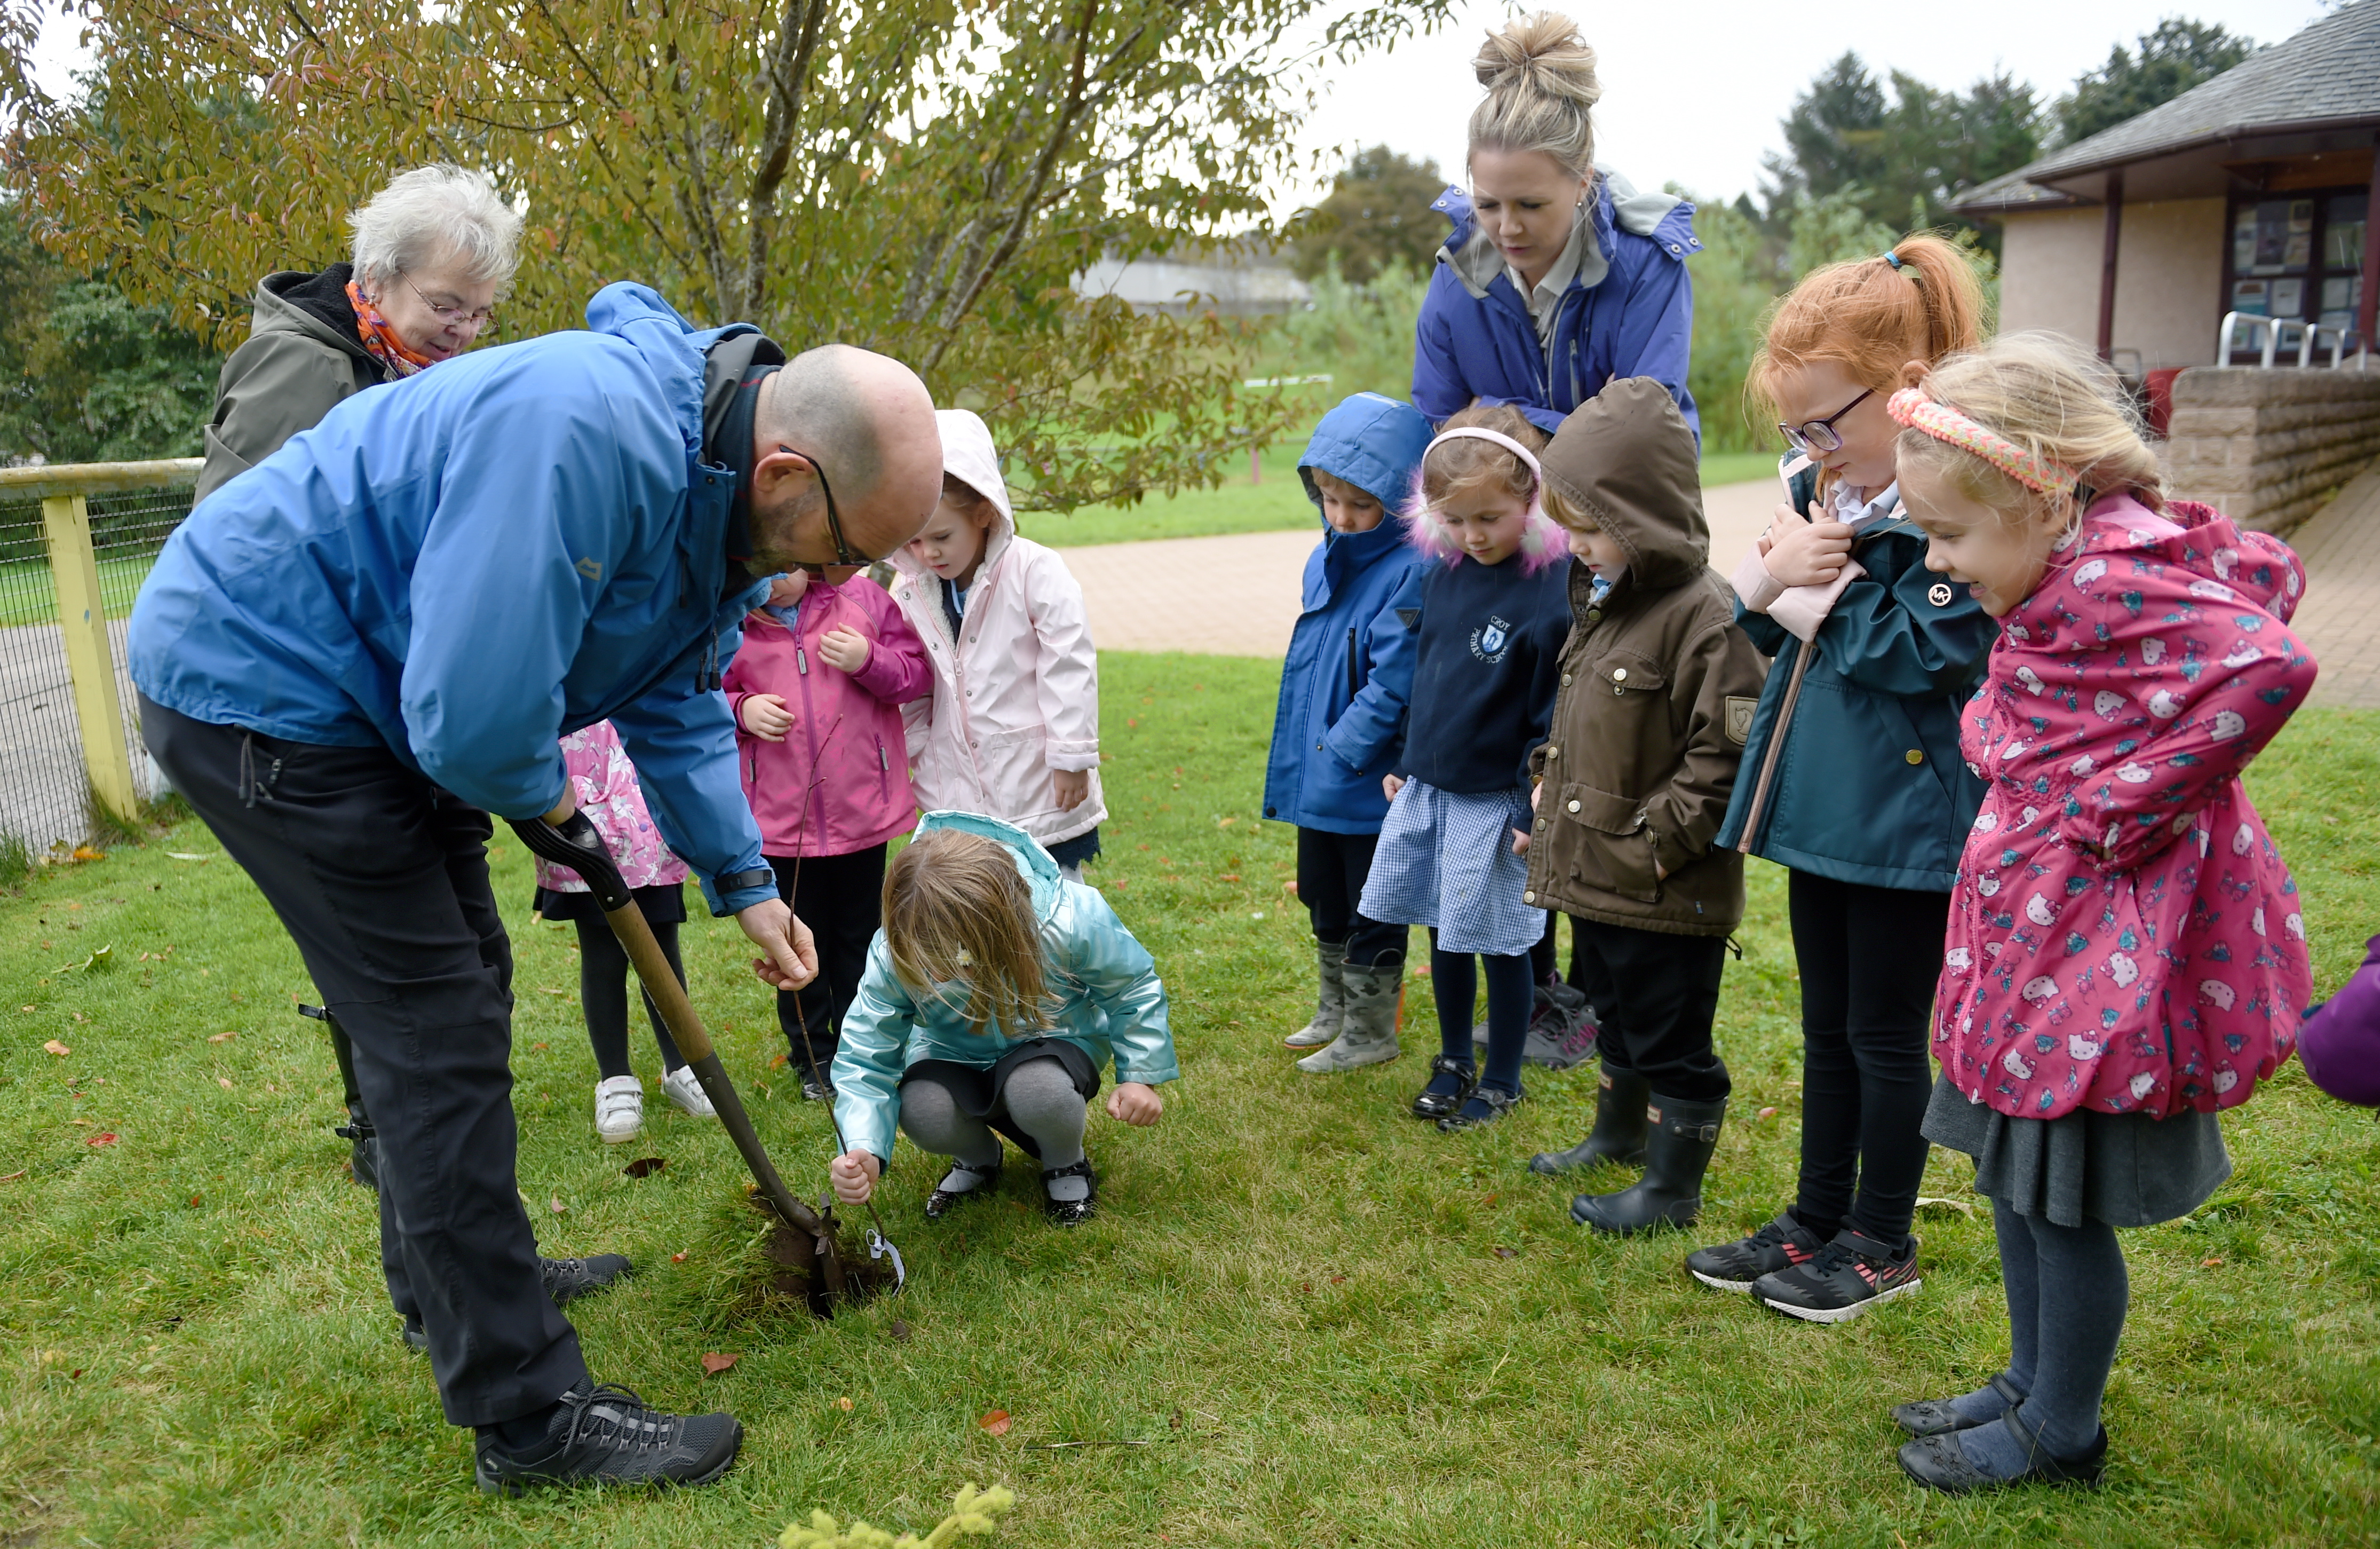 Pupils of Primary 1 in Croy Primary School yesterday planted trees in the school grounds. Highland Coumcil Forestry Officer Grant Stuart helps the pupils plant the trees.